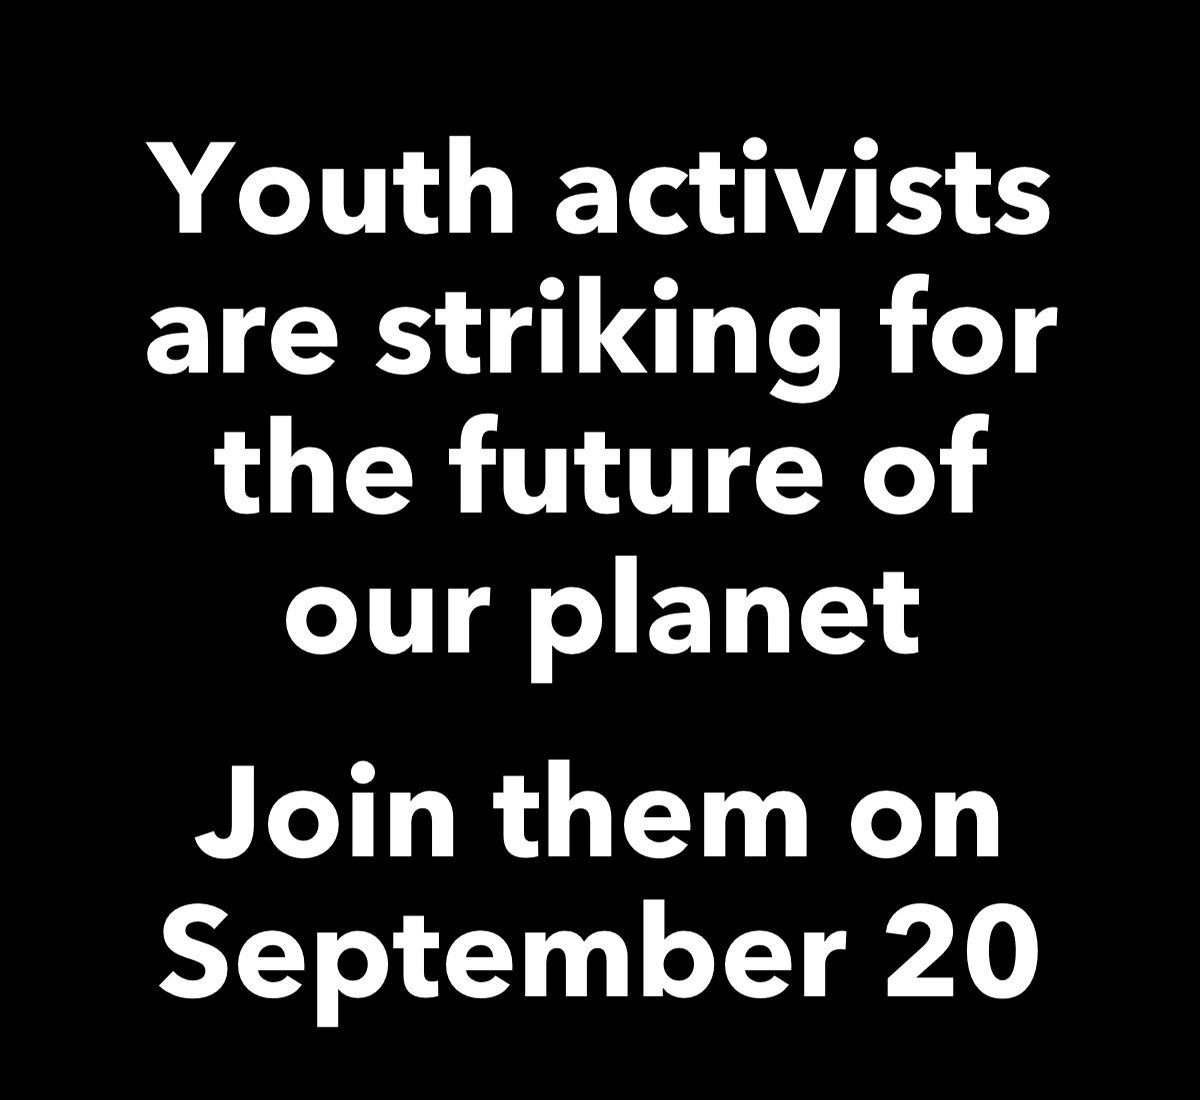 Youth activists are striking for the future of our planet. Join them.